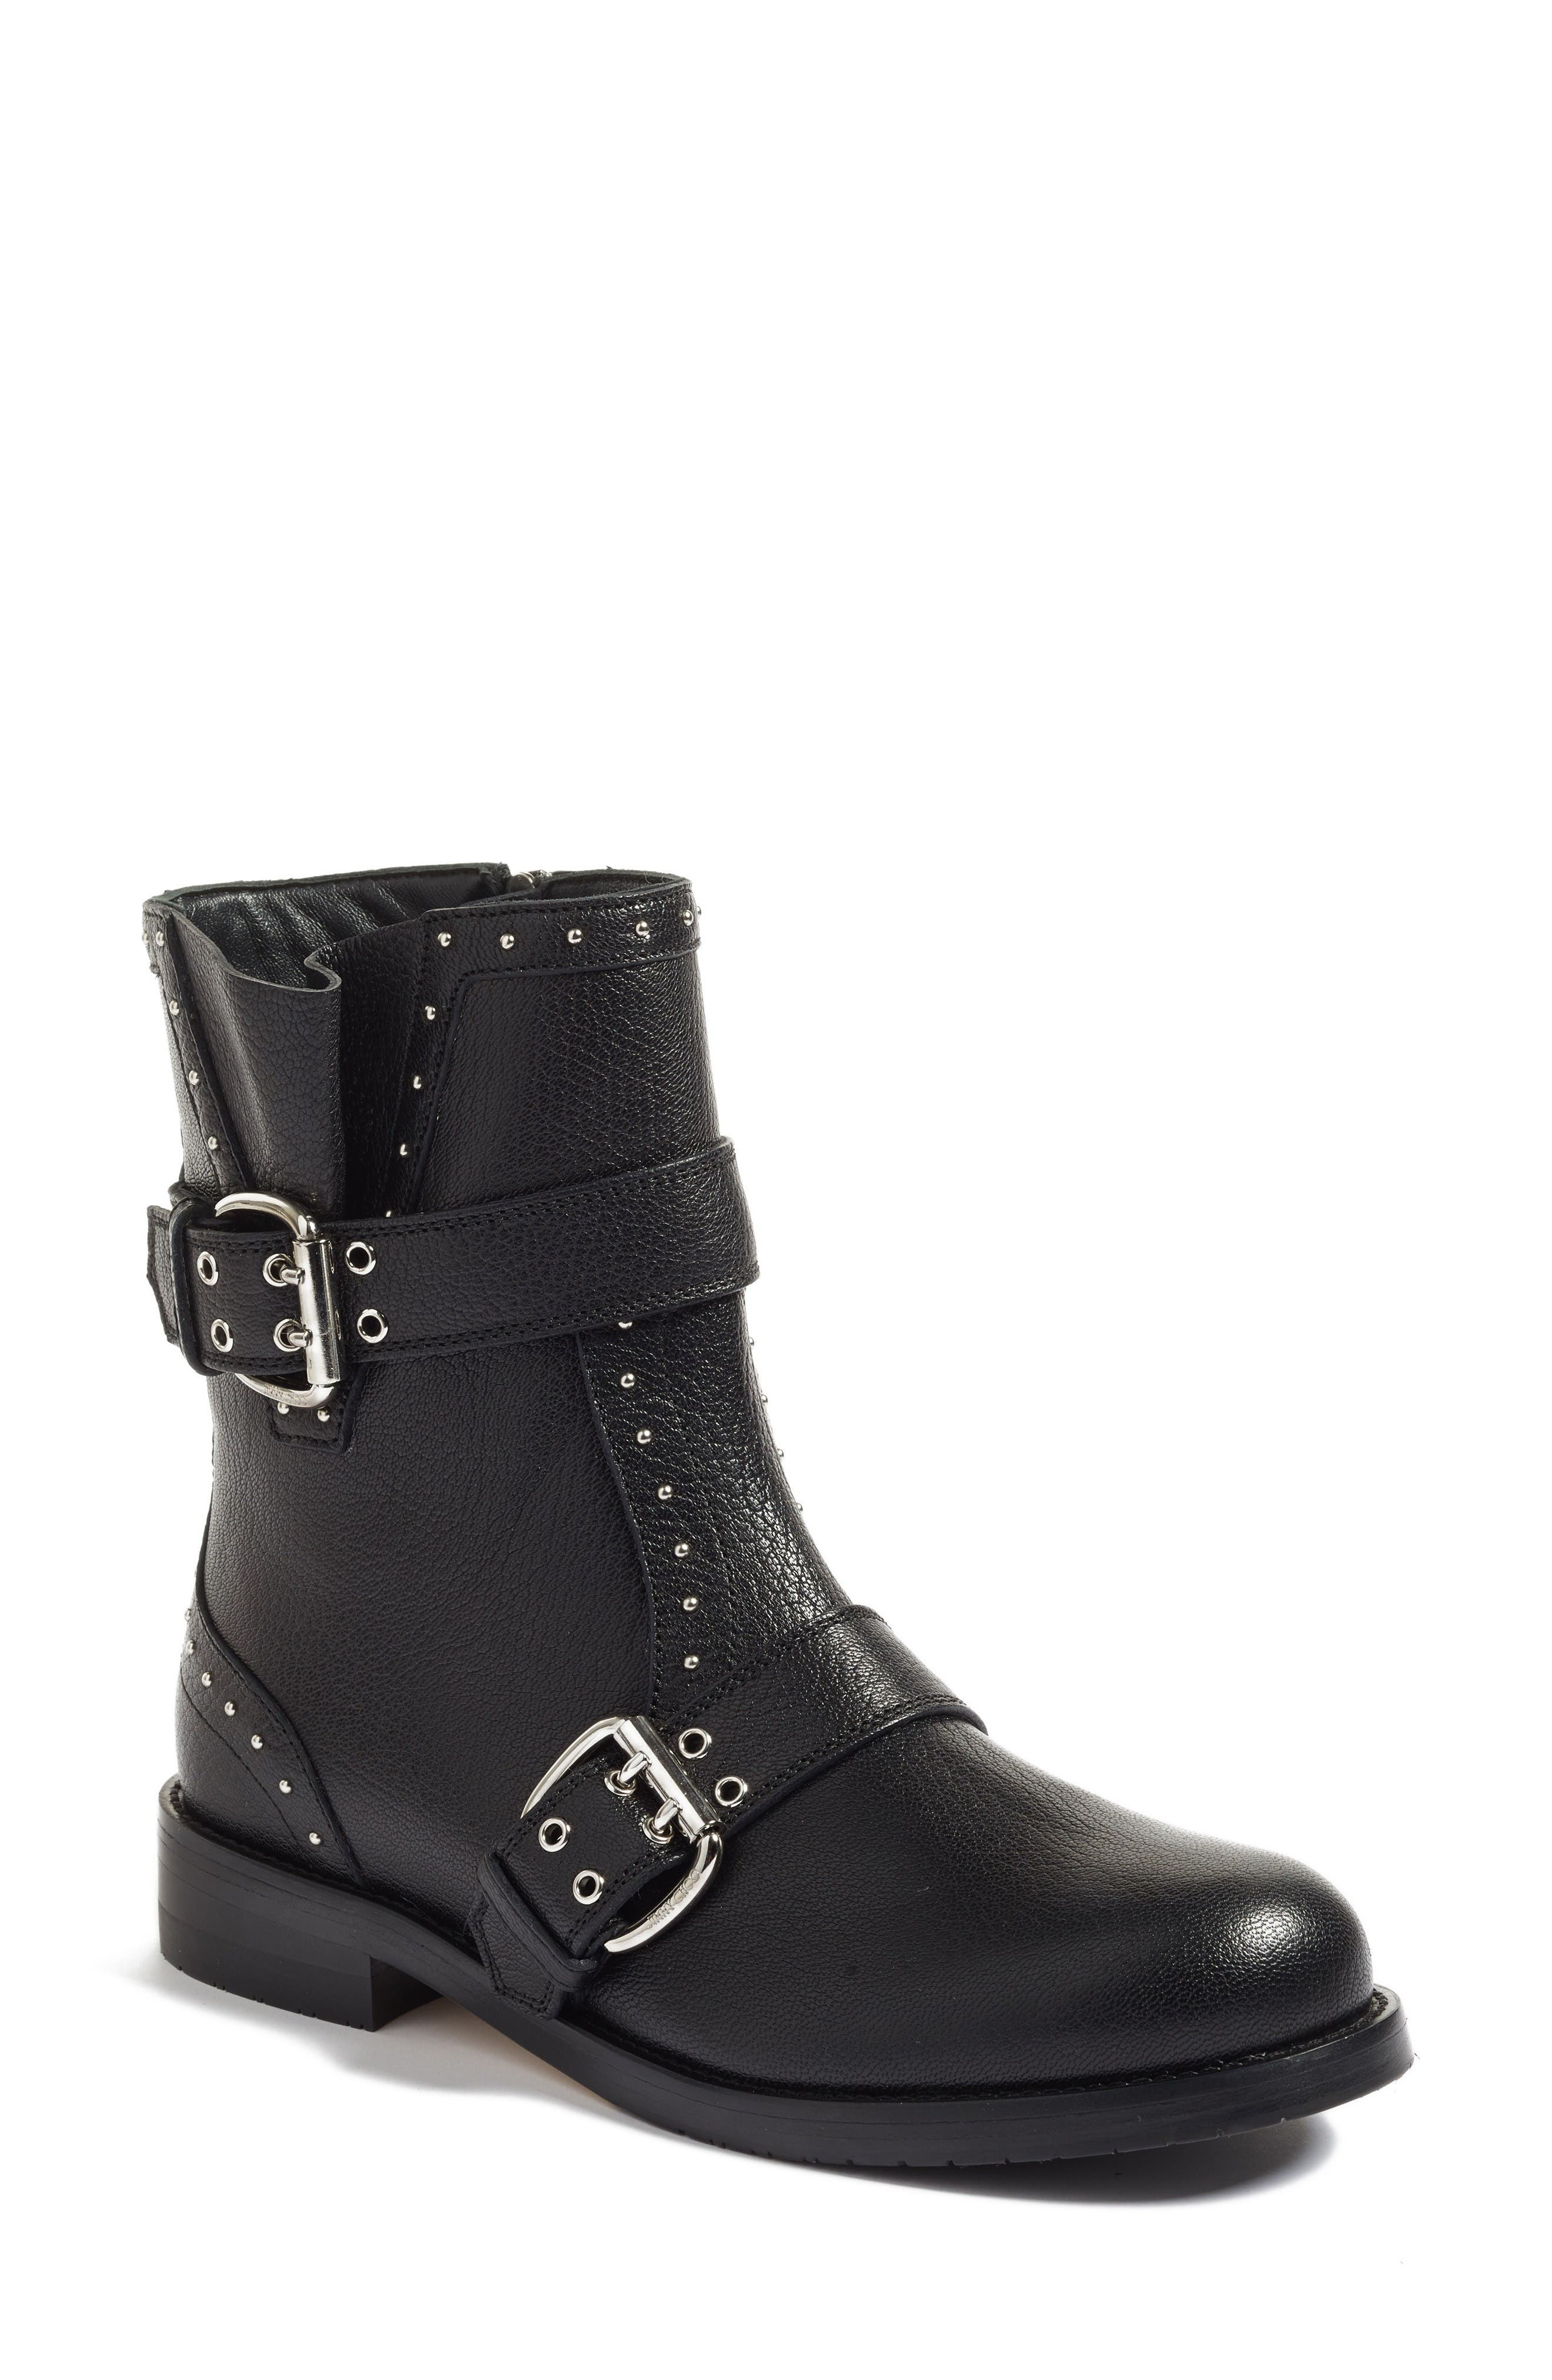 Blyss Combat Boot,                         Main,                         color, Black Leather